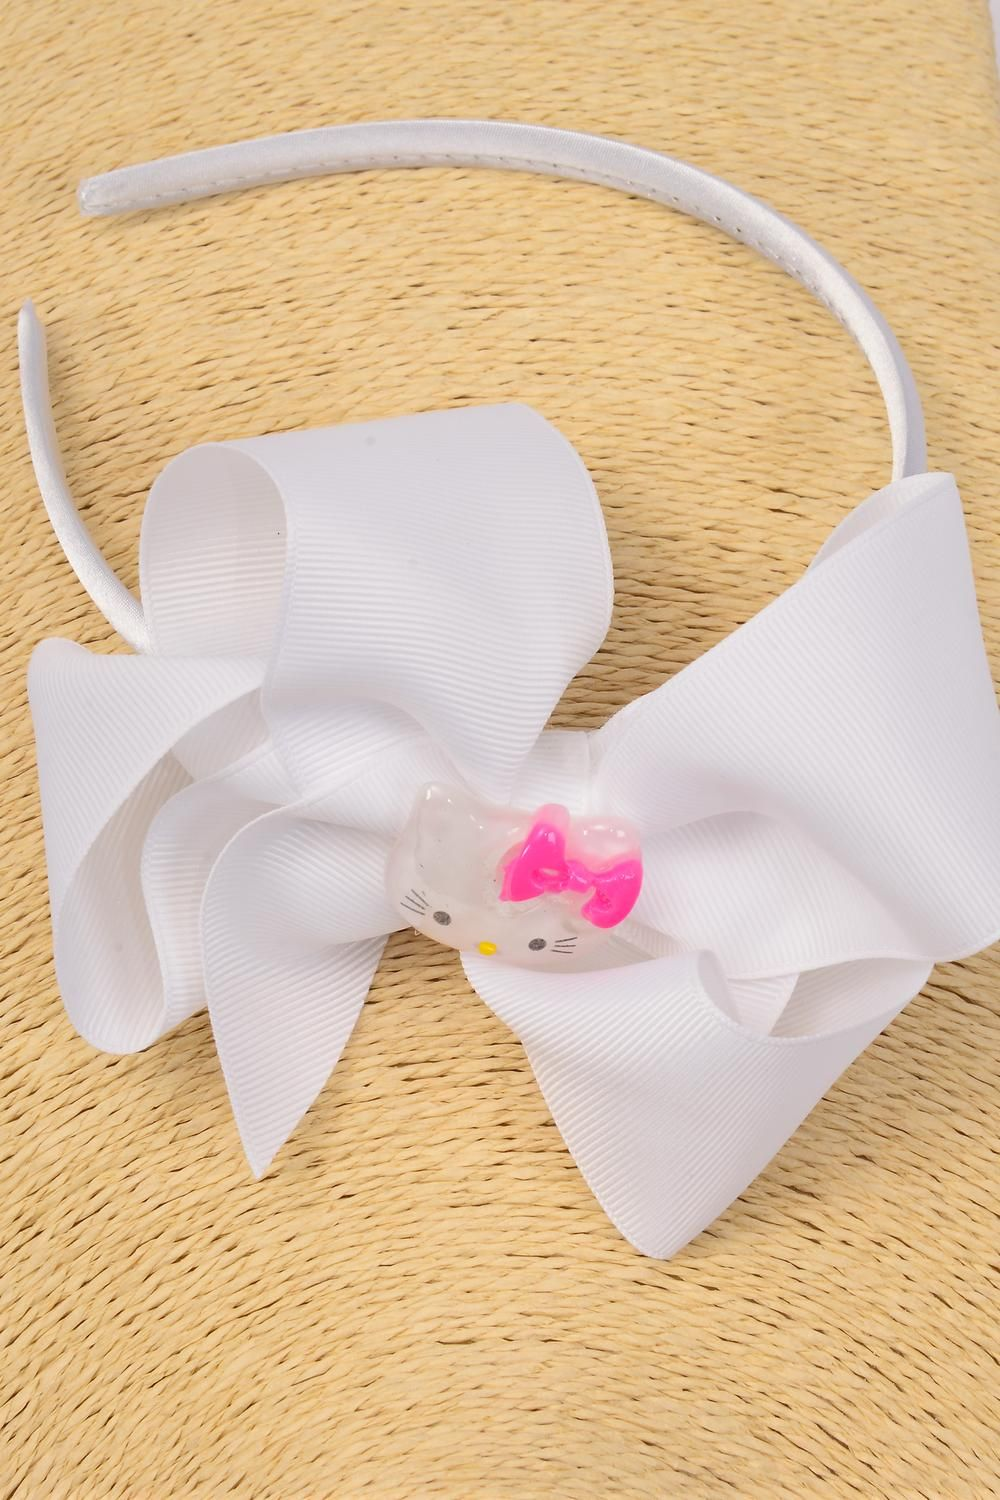 "Headband Horseshoe Jumbo Cat Poly Grosgrain Bow-tie White/DZ **White** Size-6""x 5"" Wide,Display Card & UPC Code,Clear Box"